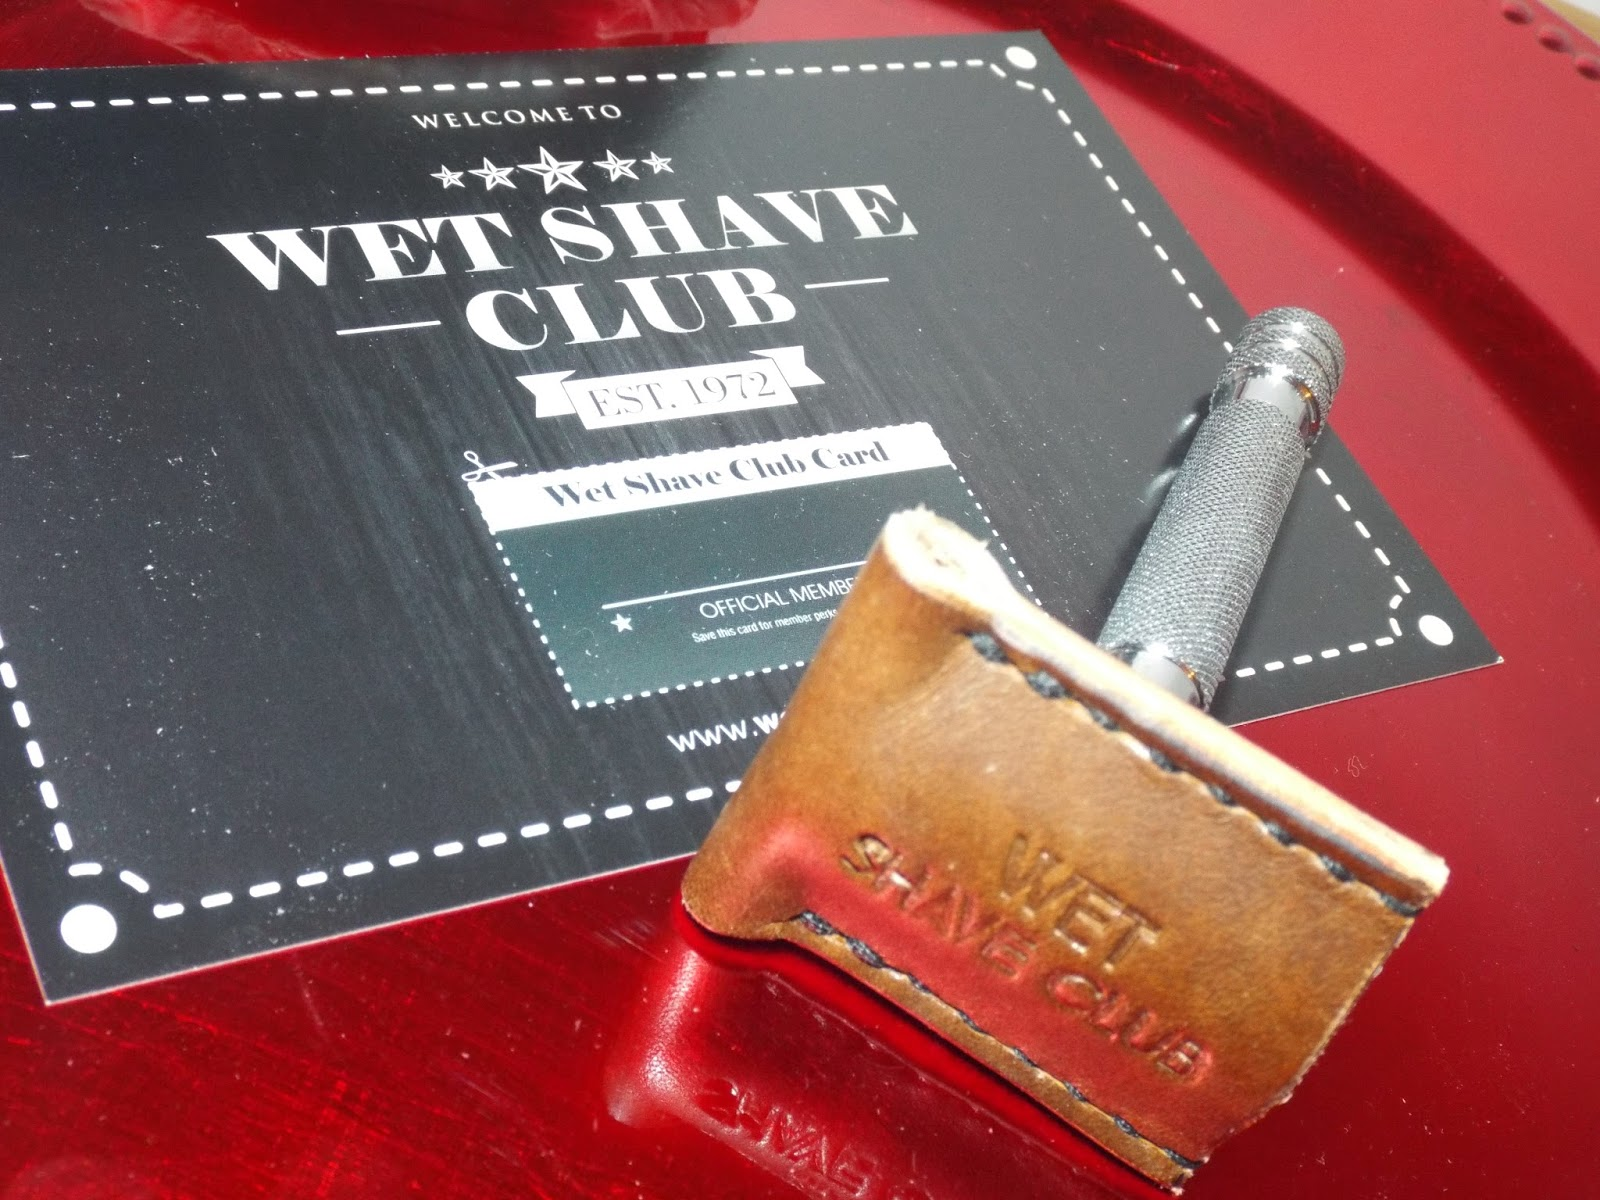 Wet Shave Club Leather Cover